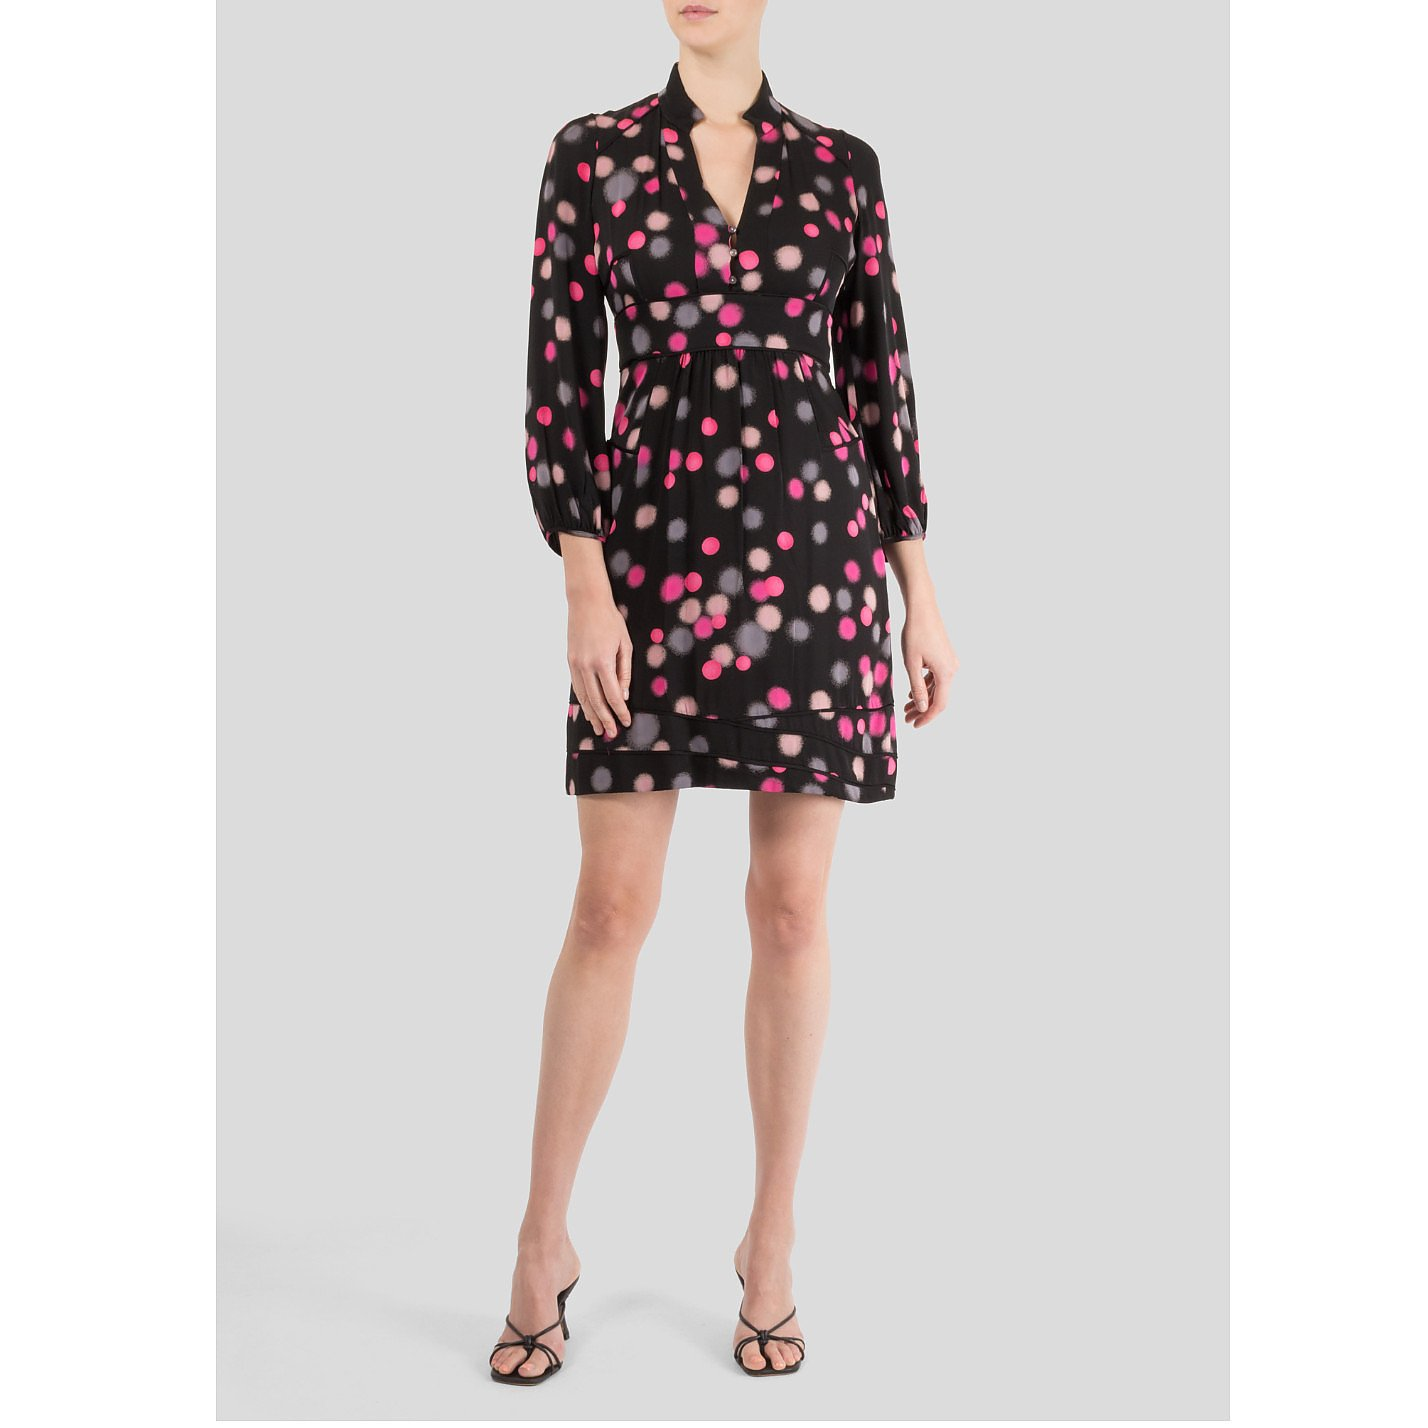 Diane von Furstenberg Polka Dot Print Dress